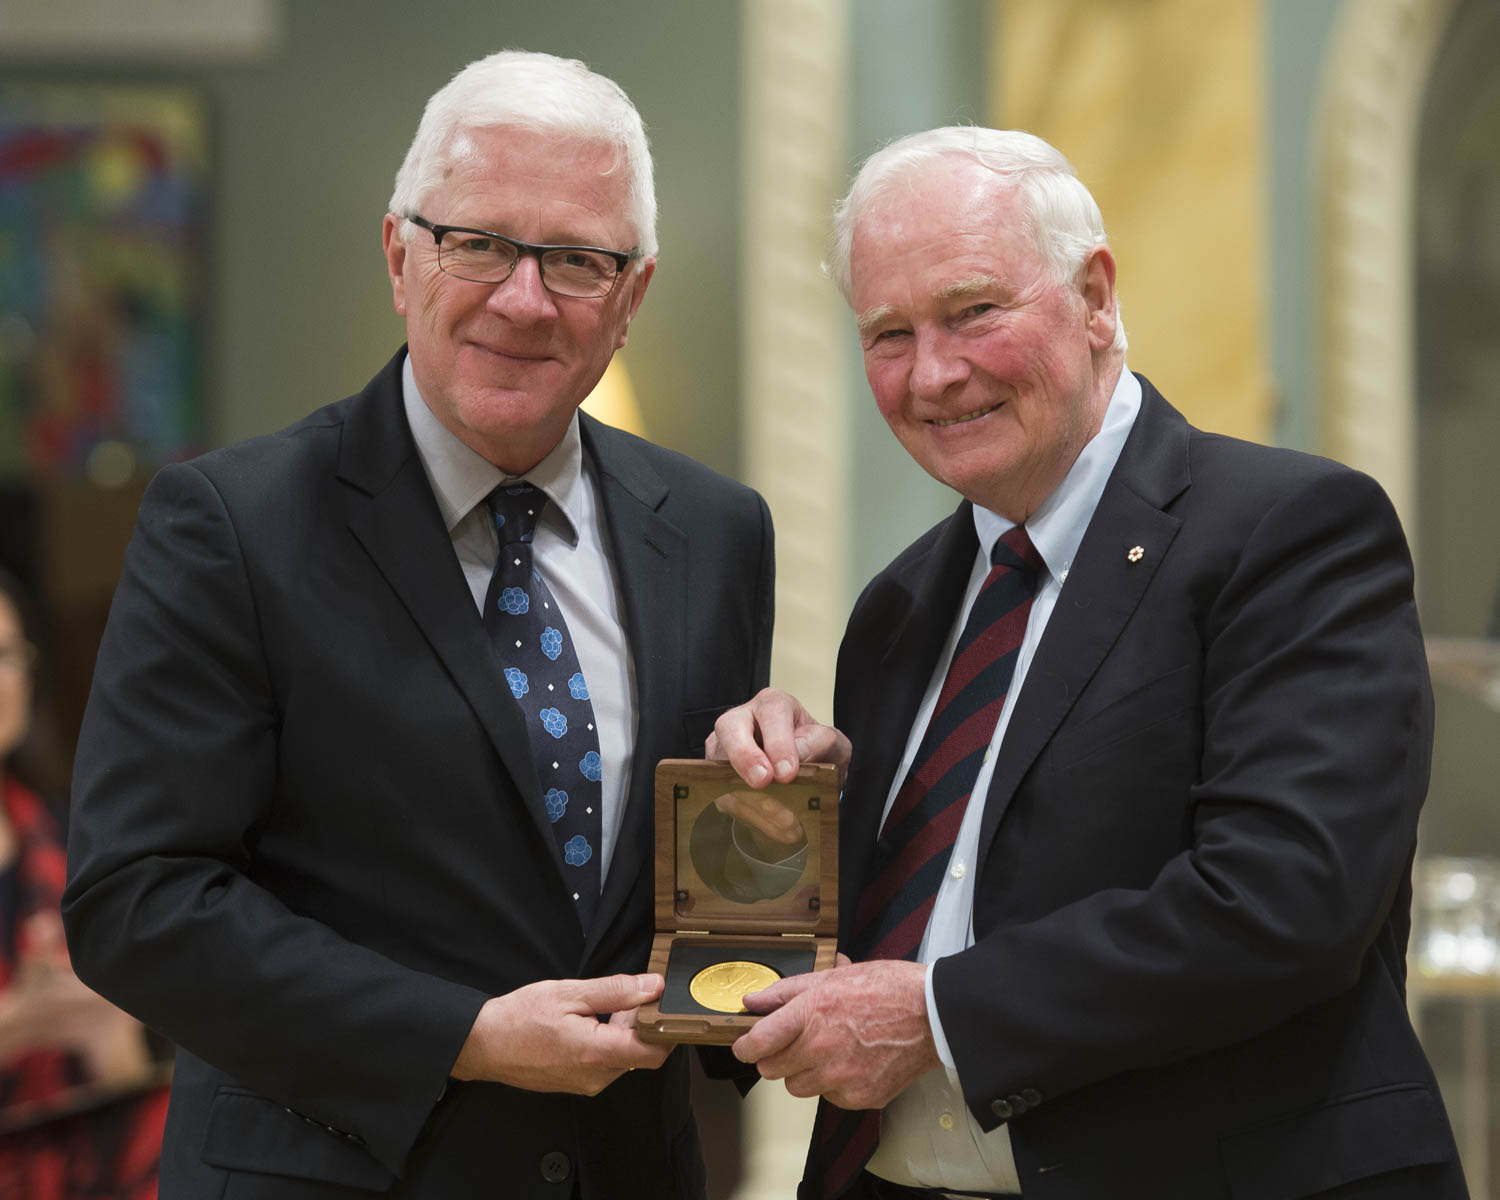 Dr. John Dick received the CIHR Gold Leaf Prize for Discovery. He was recognized for his pioneering work as the first scientist to identify cancer stem cells.